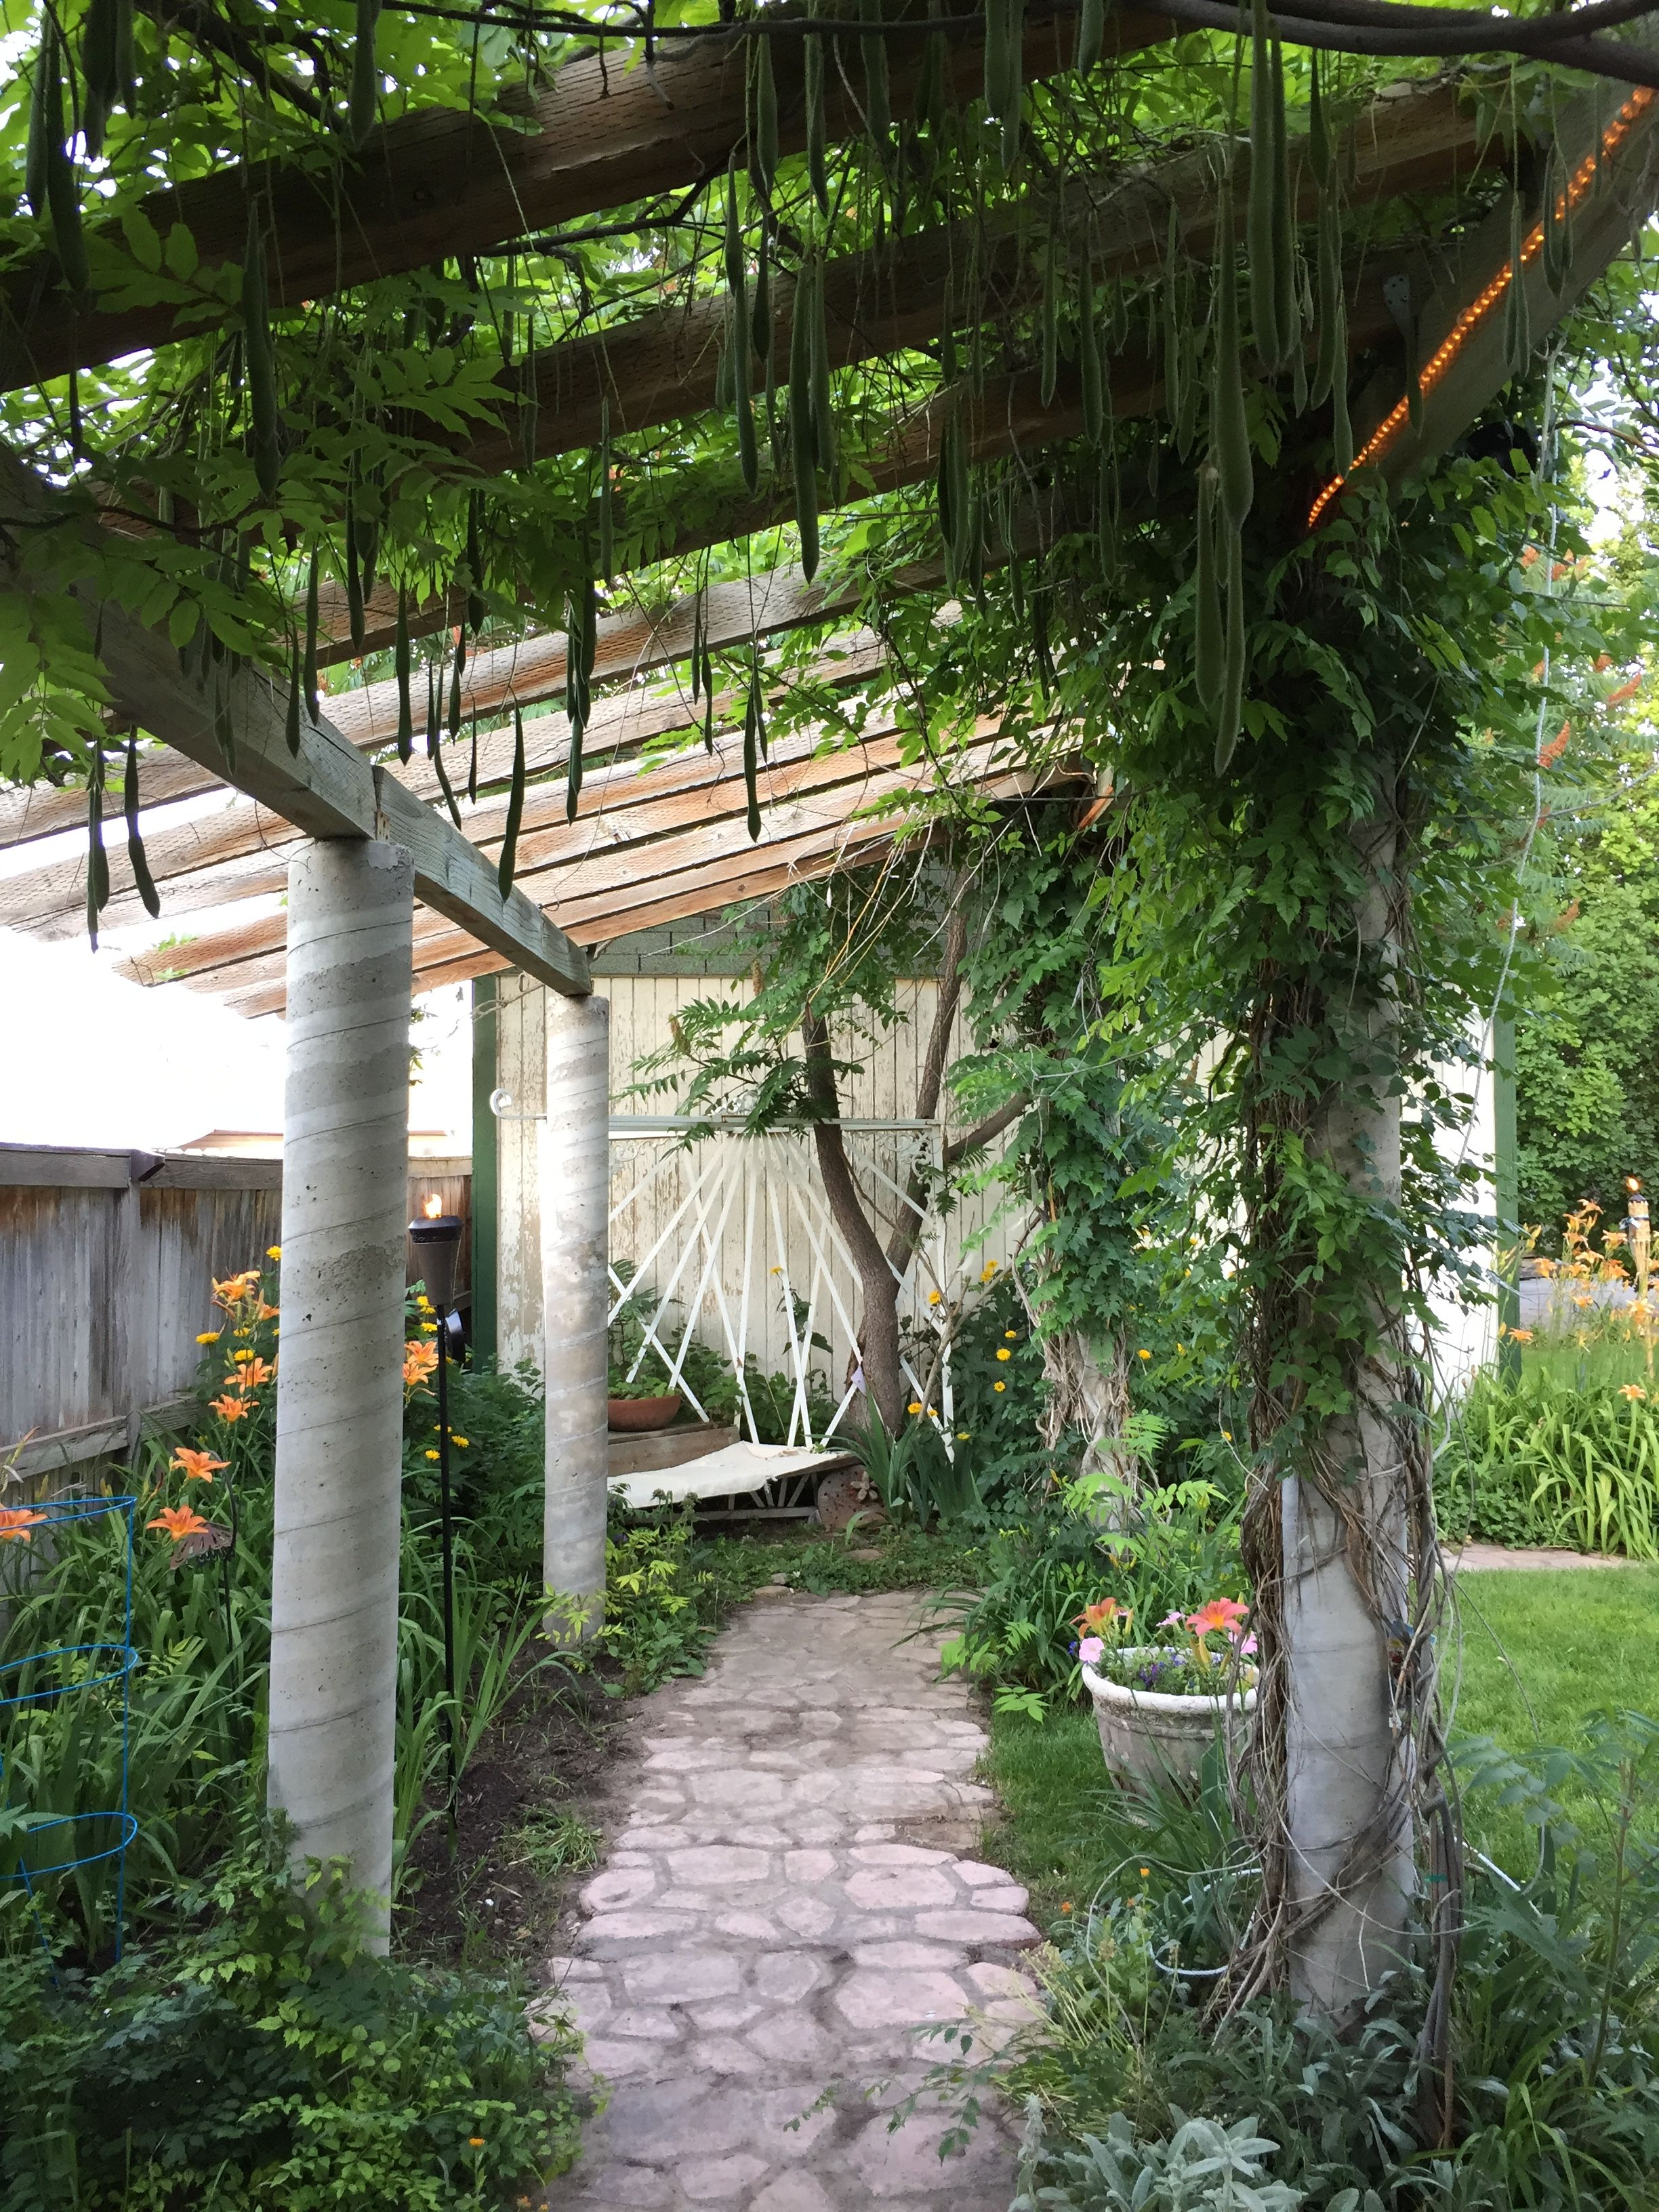 Another view of the pergola. The concrete posts looked like they had been poured using cardboard carpet tubes.